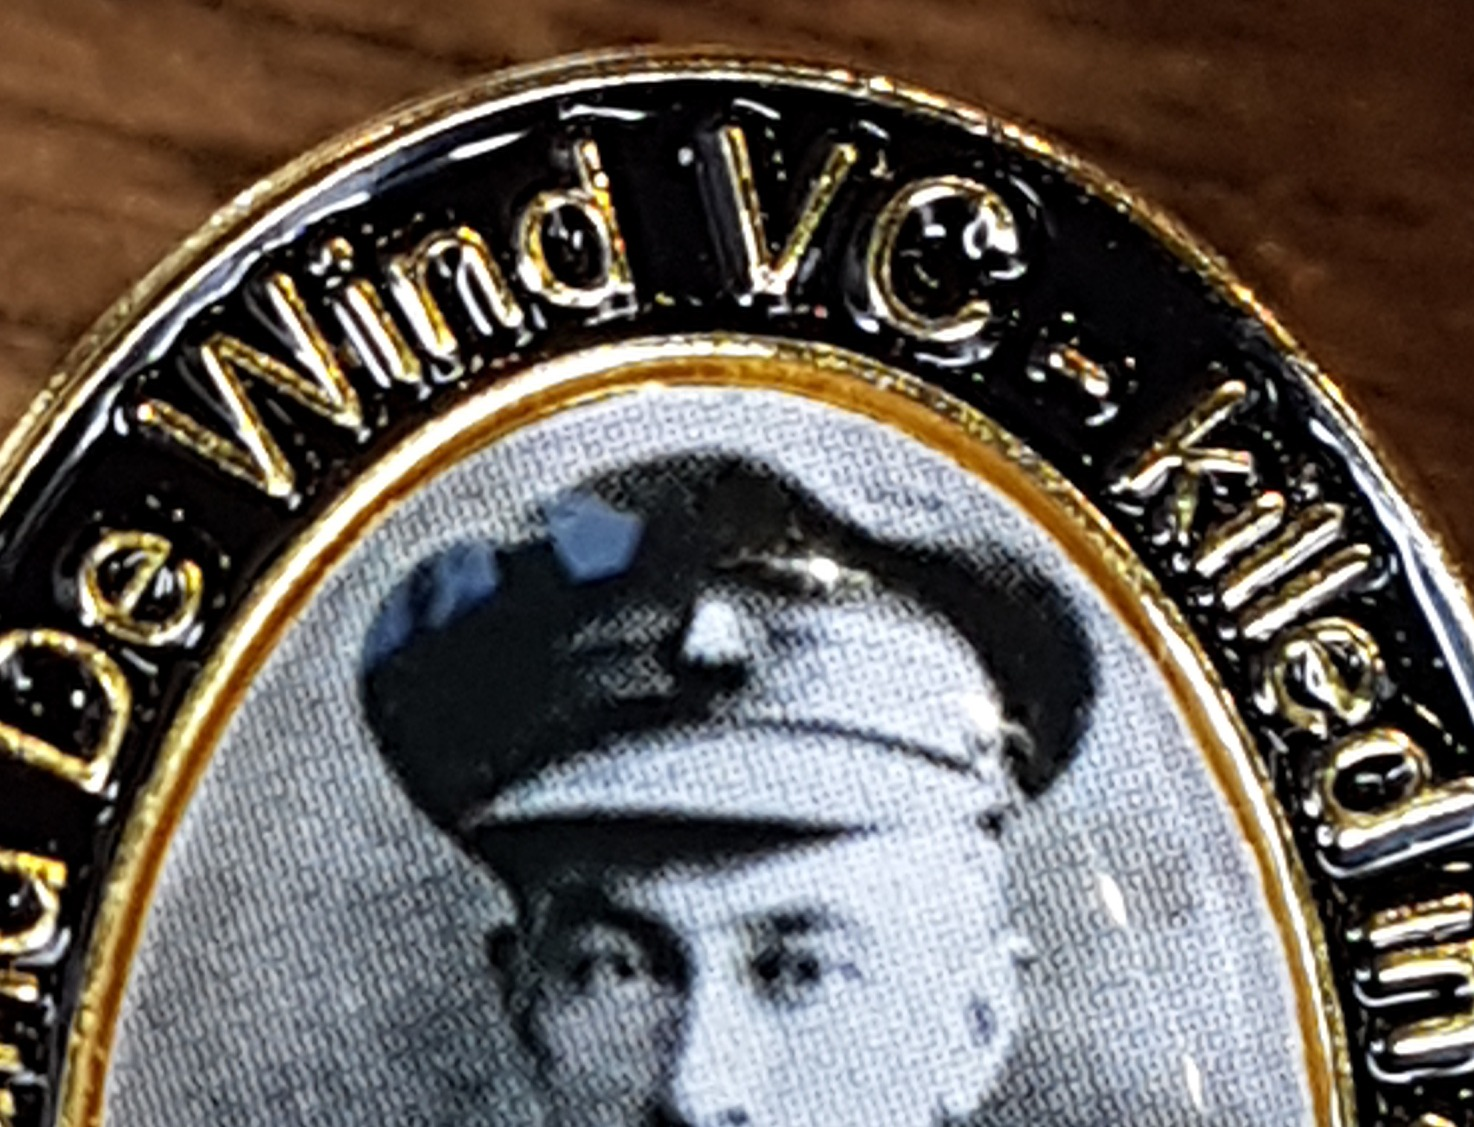 De Wind family descendants commemorate the life of former OC Edmund De Wind VC